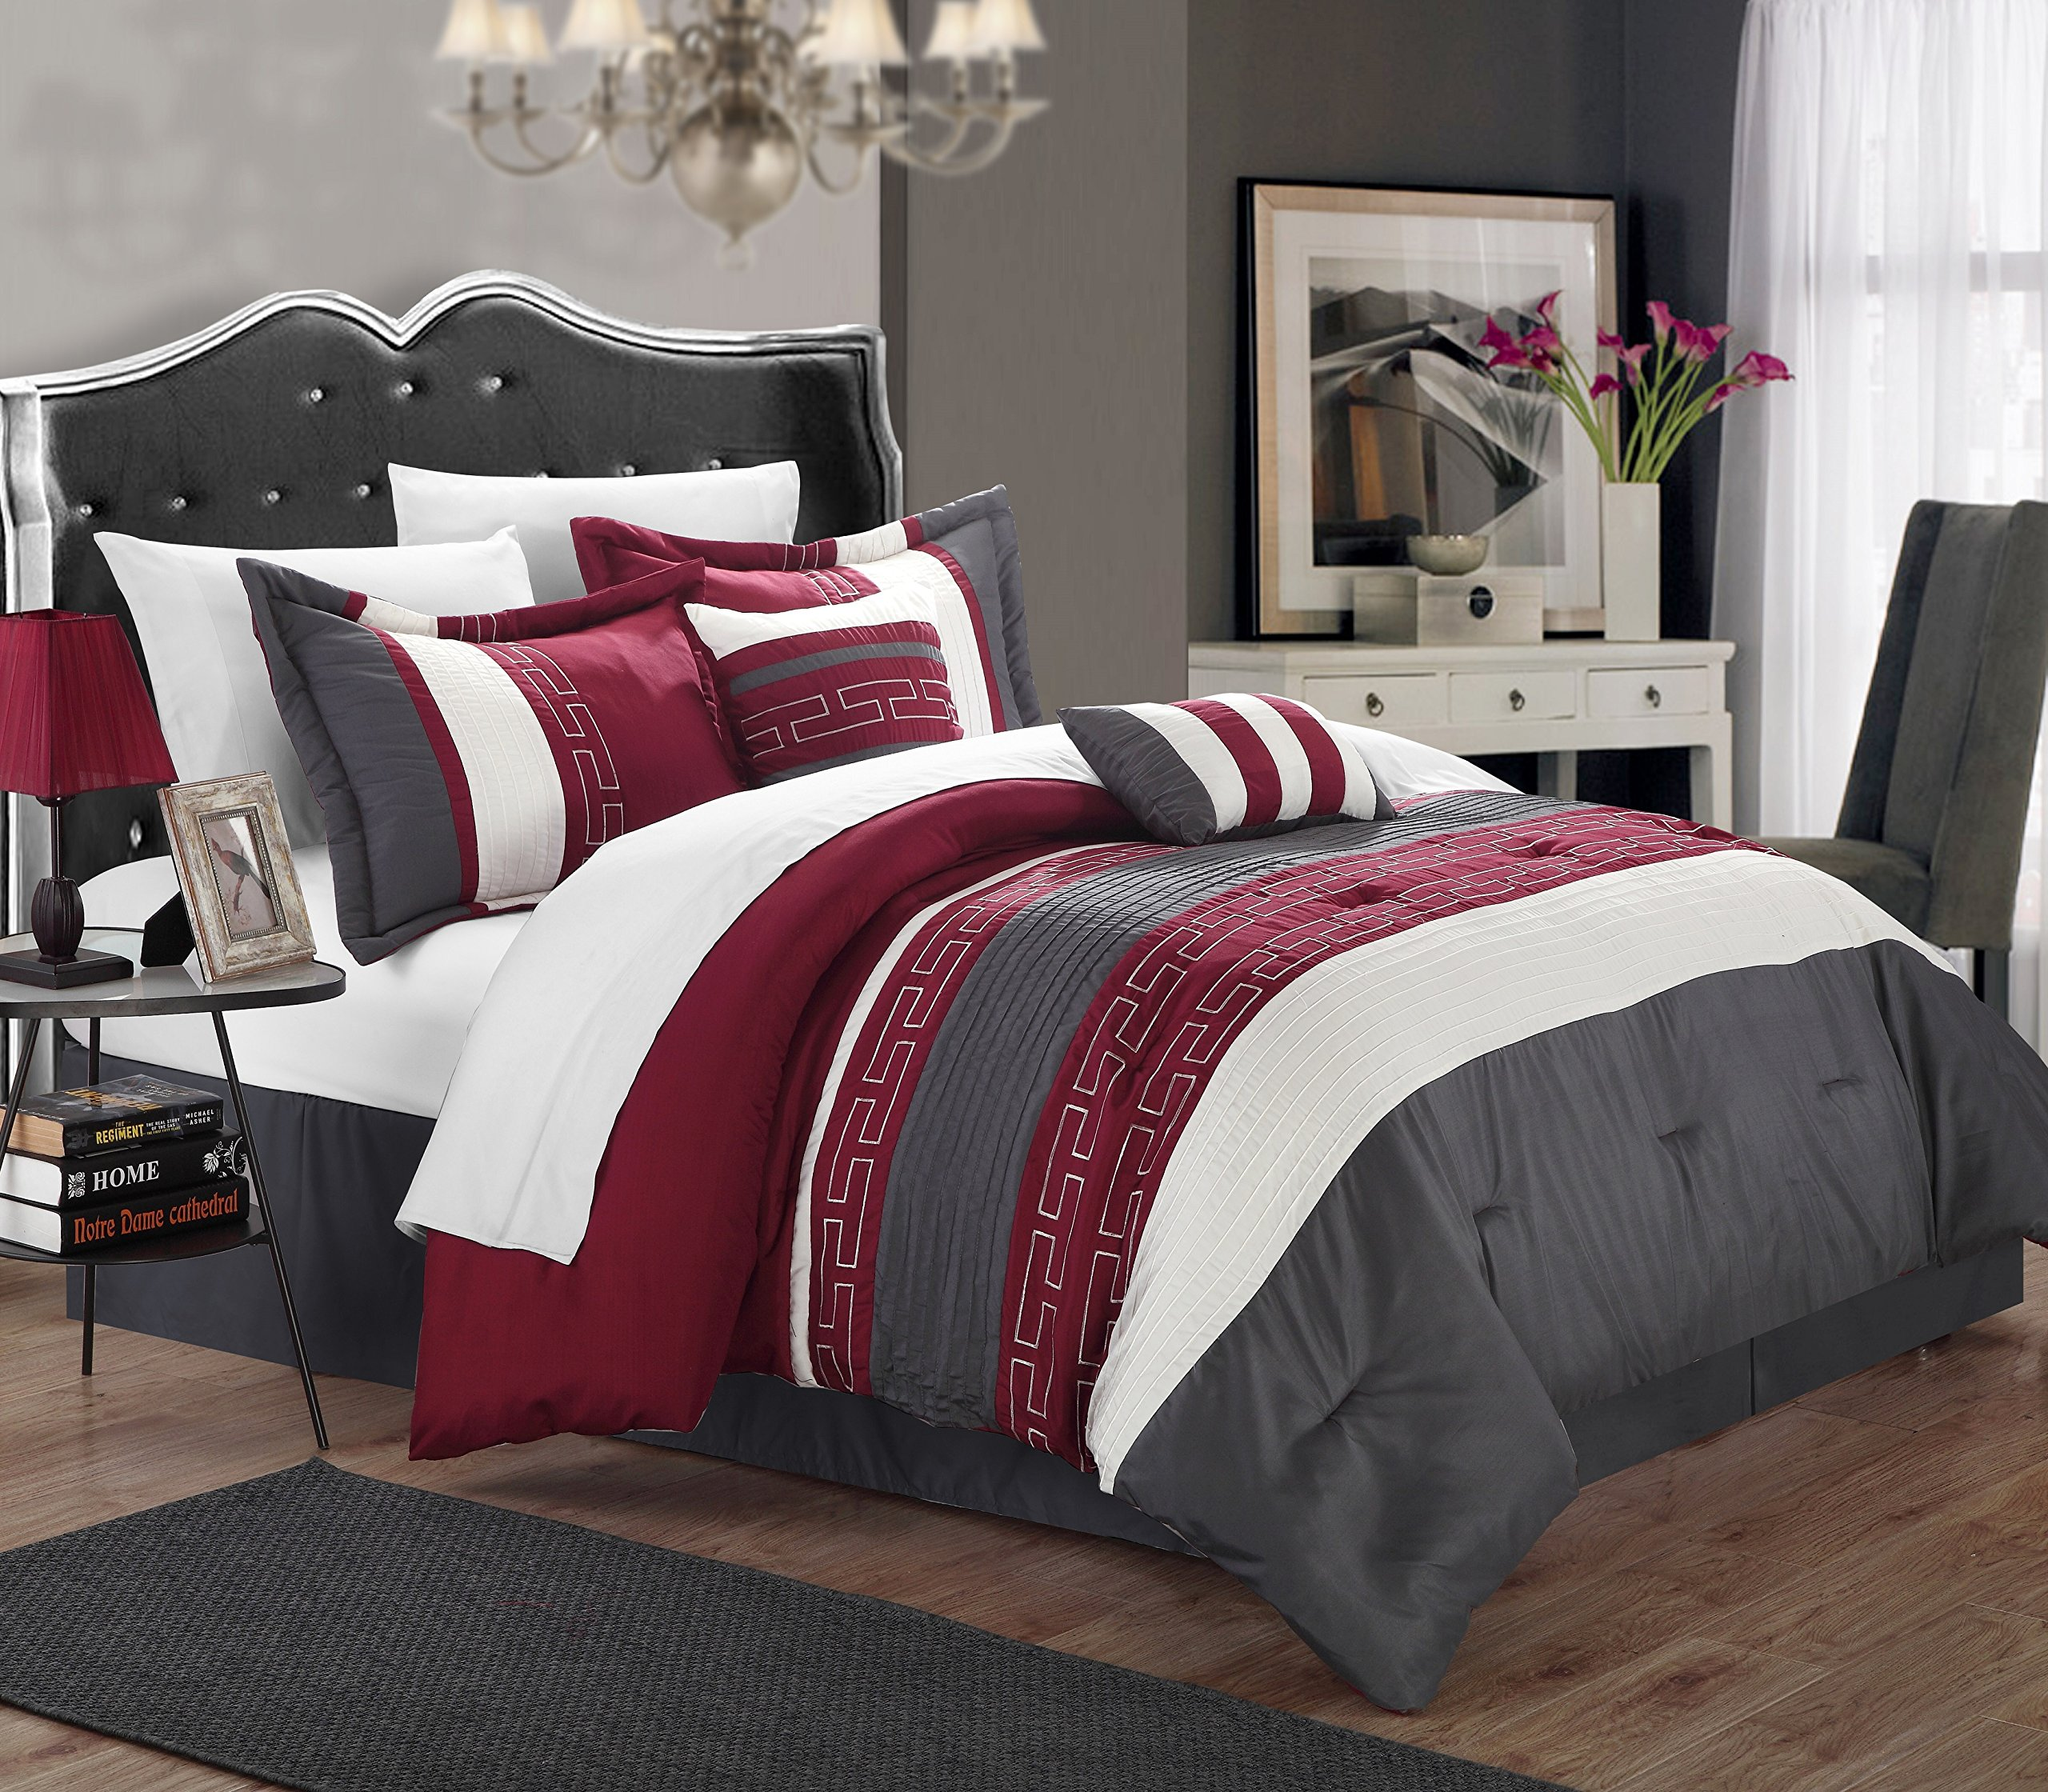 Chic Home Carlton 6-Piece Comforter Set, King Size, Burgundy by Chic Home (Image #1)